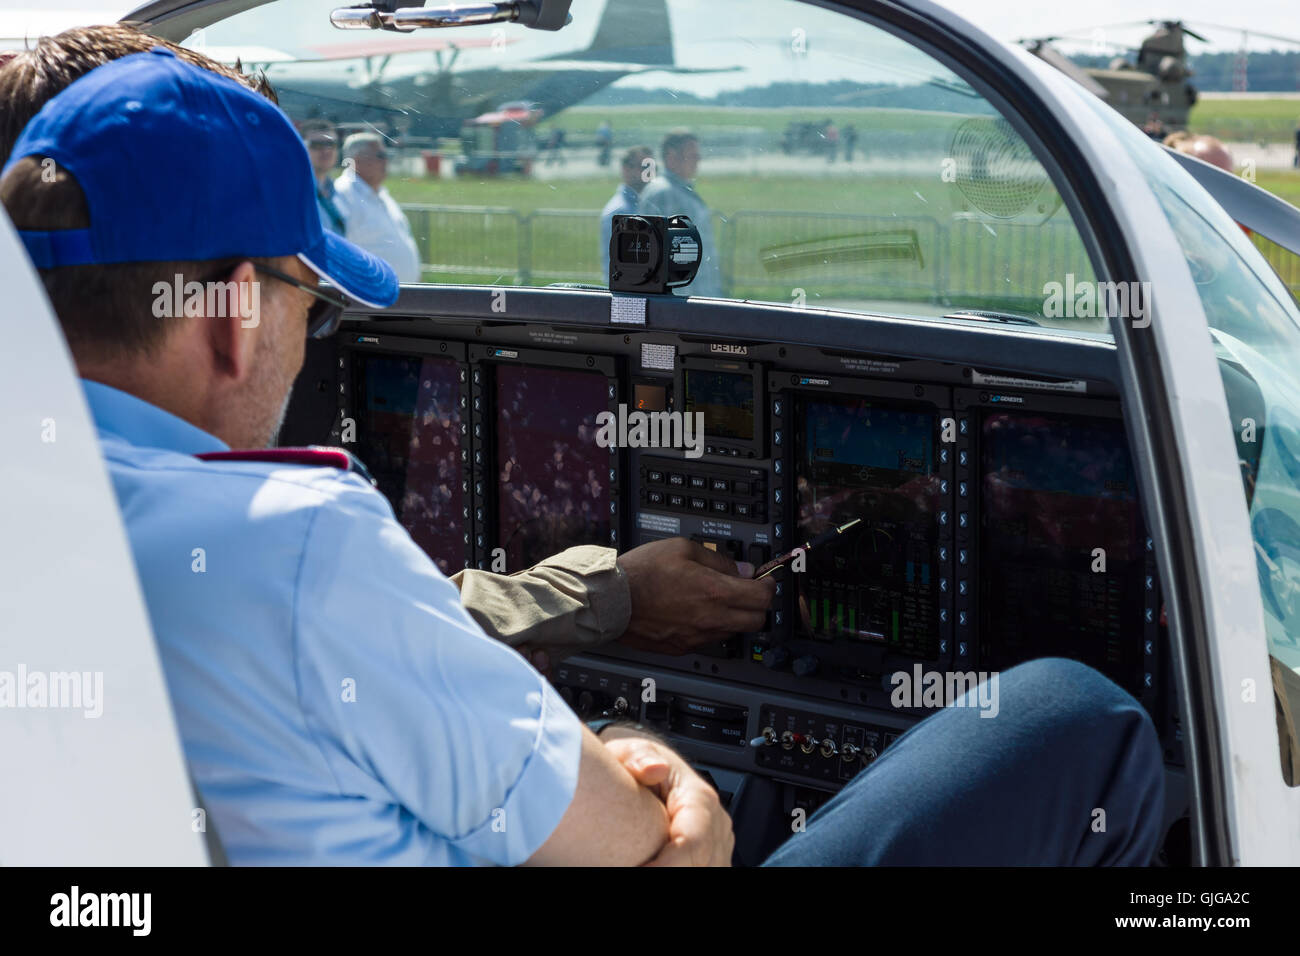 The dashboard and avionics Genesys Aerosystems of two-seat turboprop training and aerobatic low-wing aircraft Grob - Stock Image